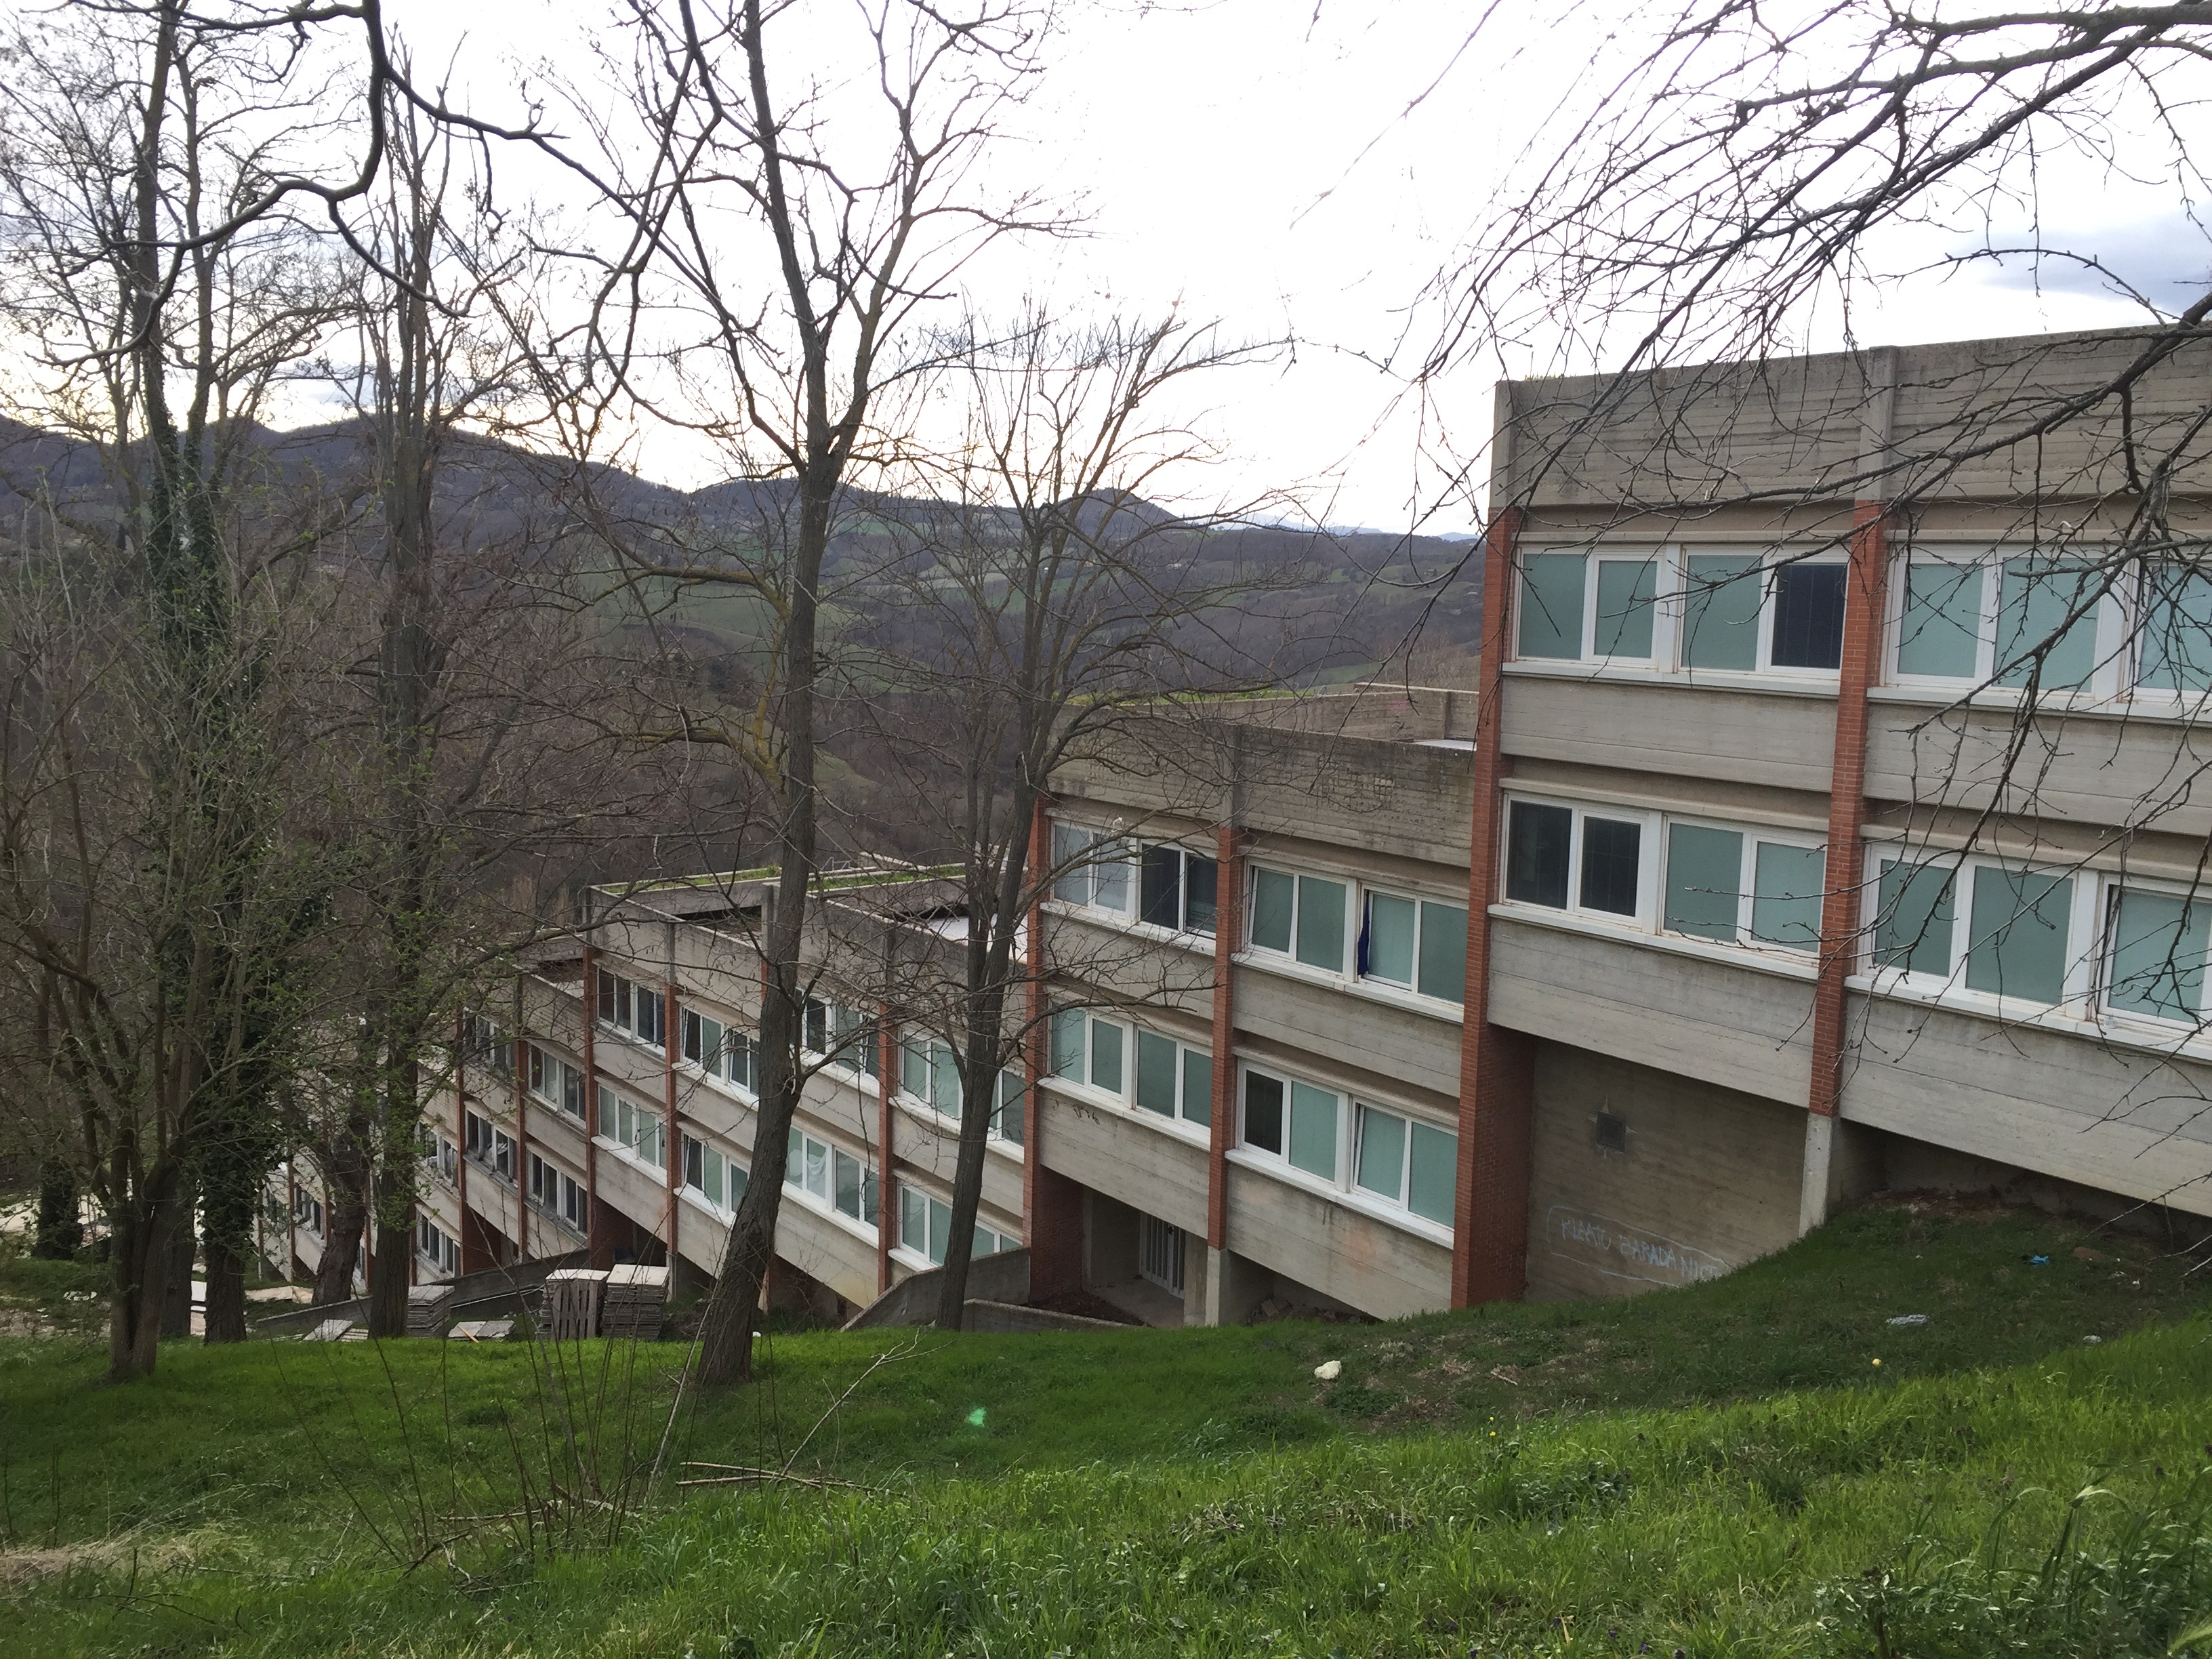 The zigzag-like structure of the Tridente dorms descends down the hillside. Photo by Bridget Hepworth